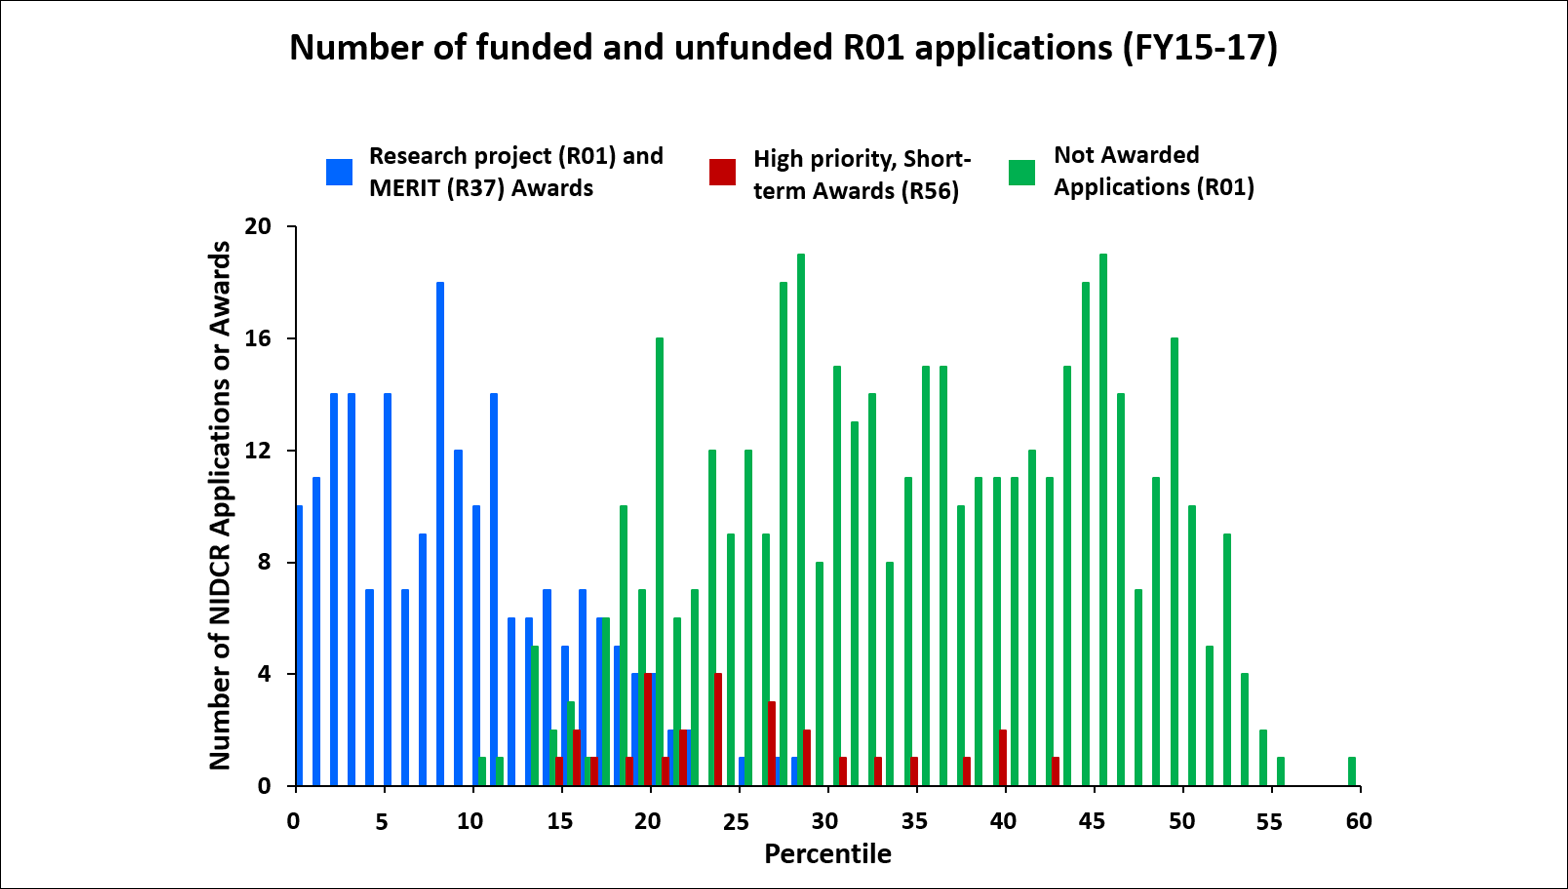 Number of funded and unfunded R01 applications (FY15-17)